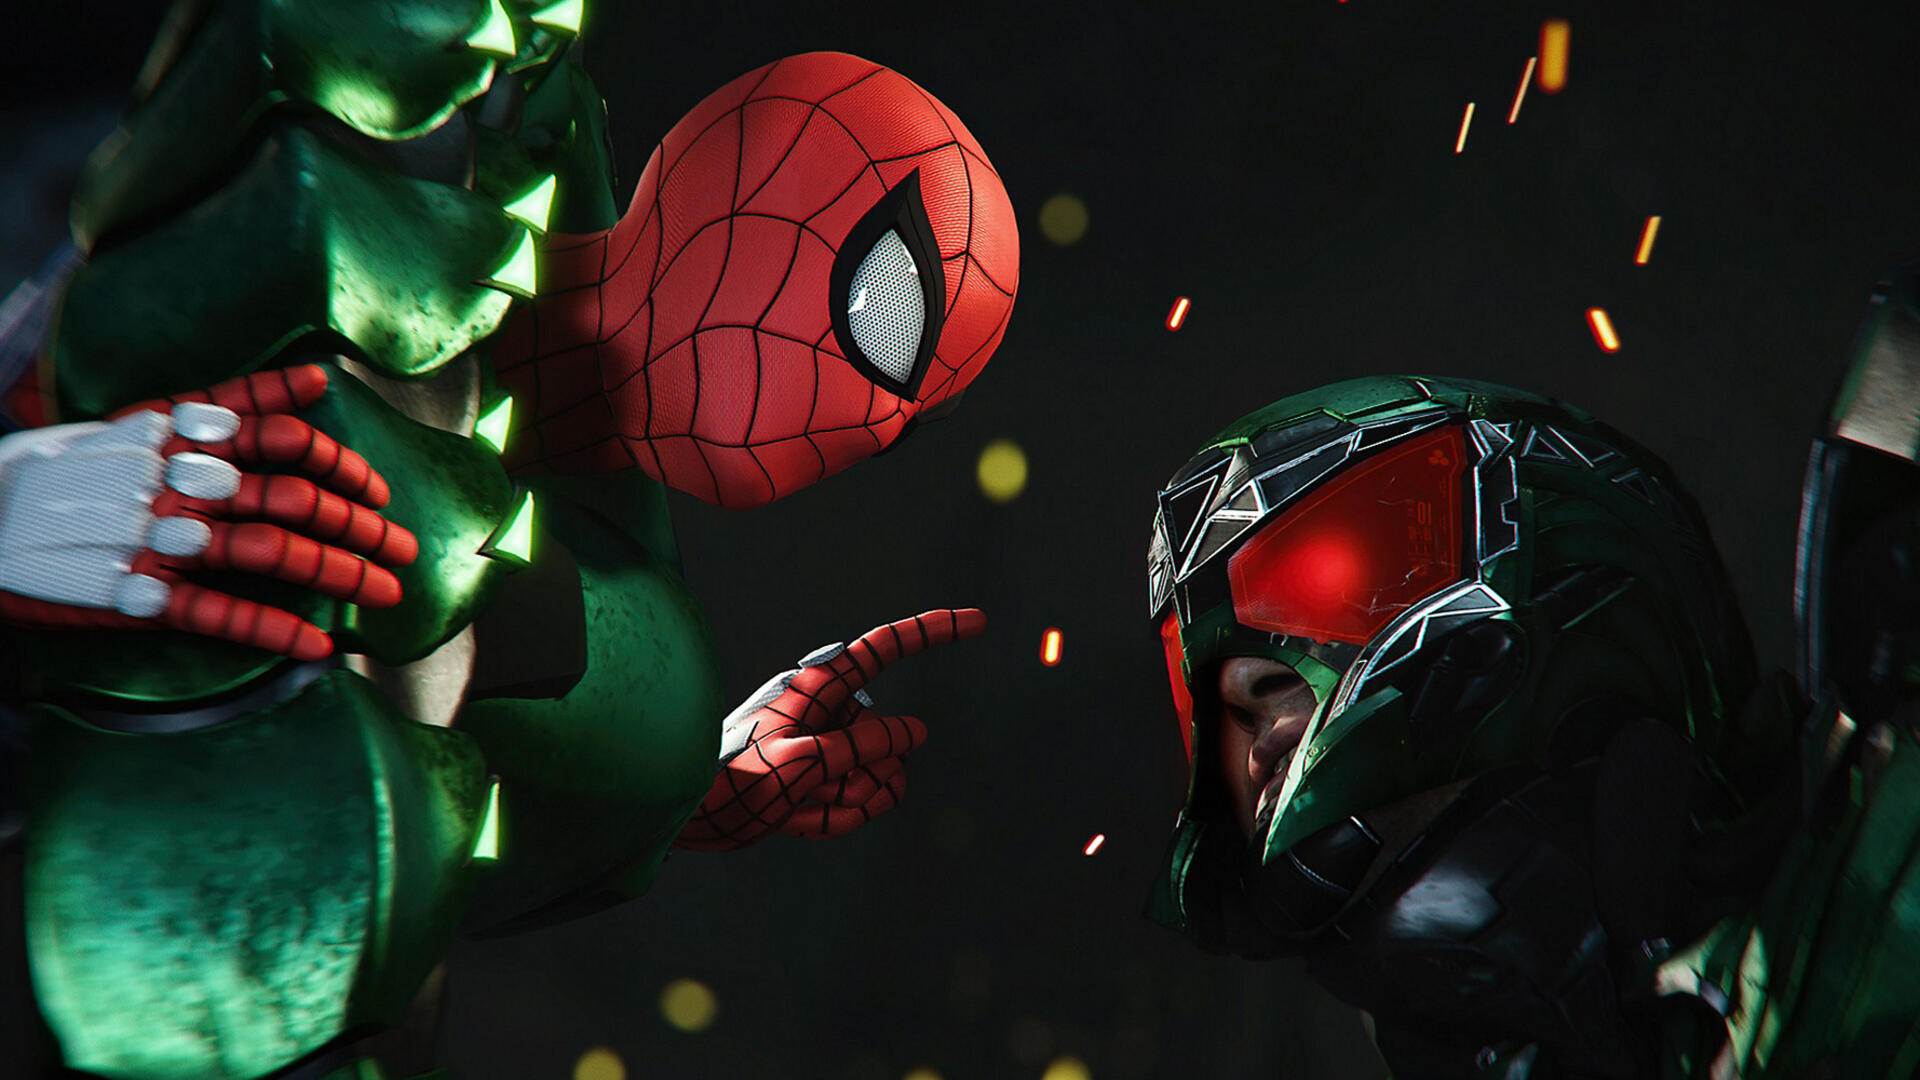 Spider-Man's Creative Director on Capturing the Sinister Six Bosses' Personalities Through Gameplay